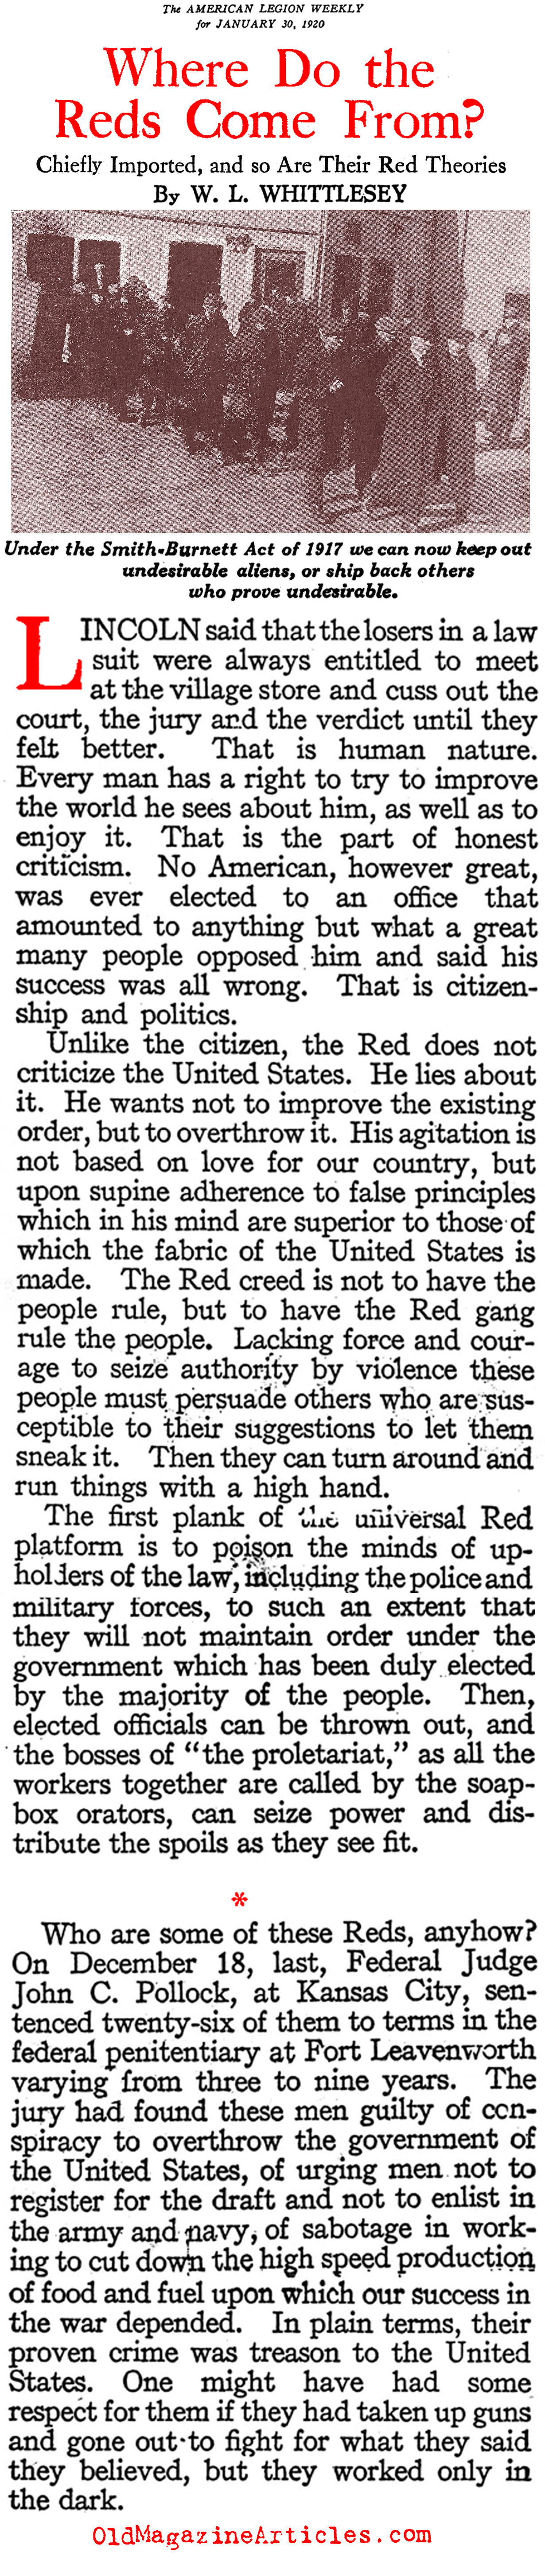 Deporting the Reds (American Legion Weekly, 1920)